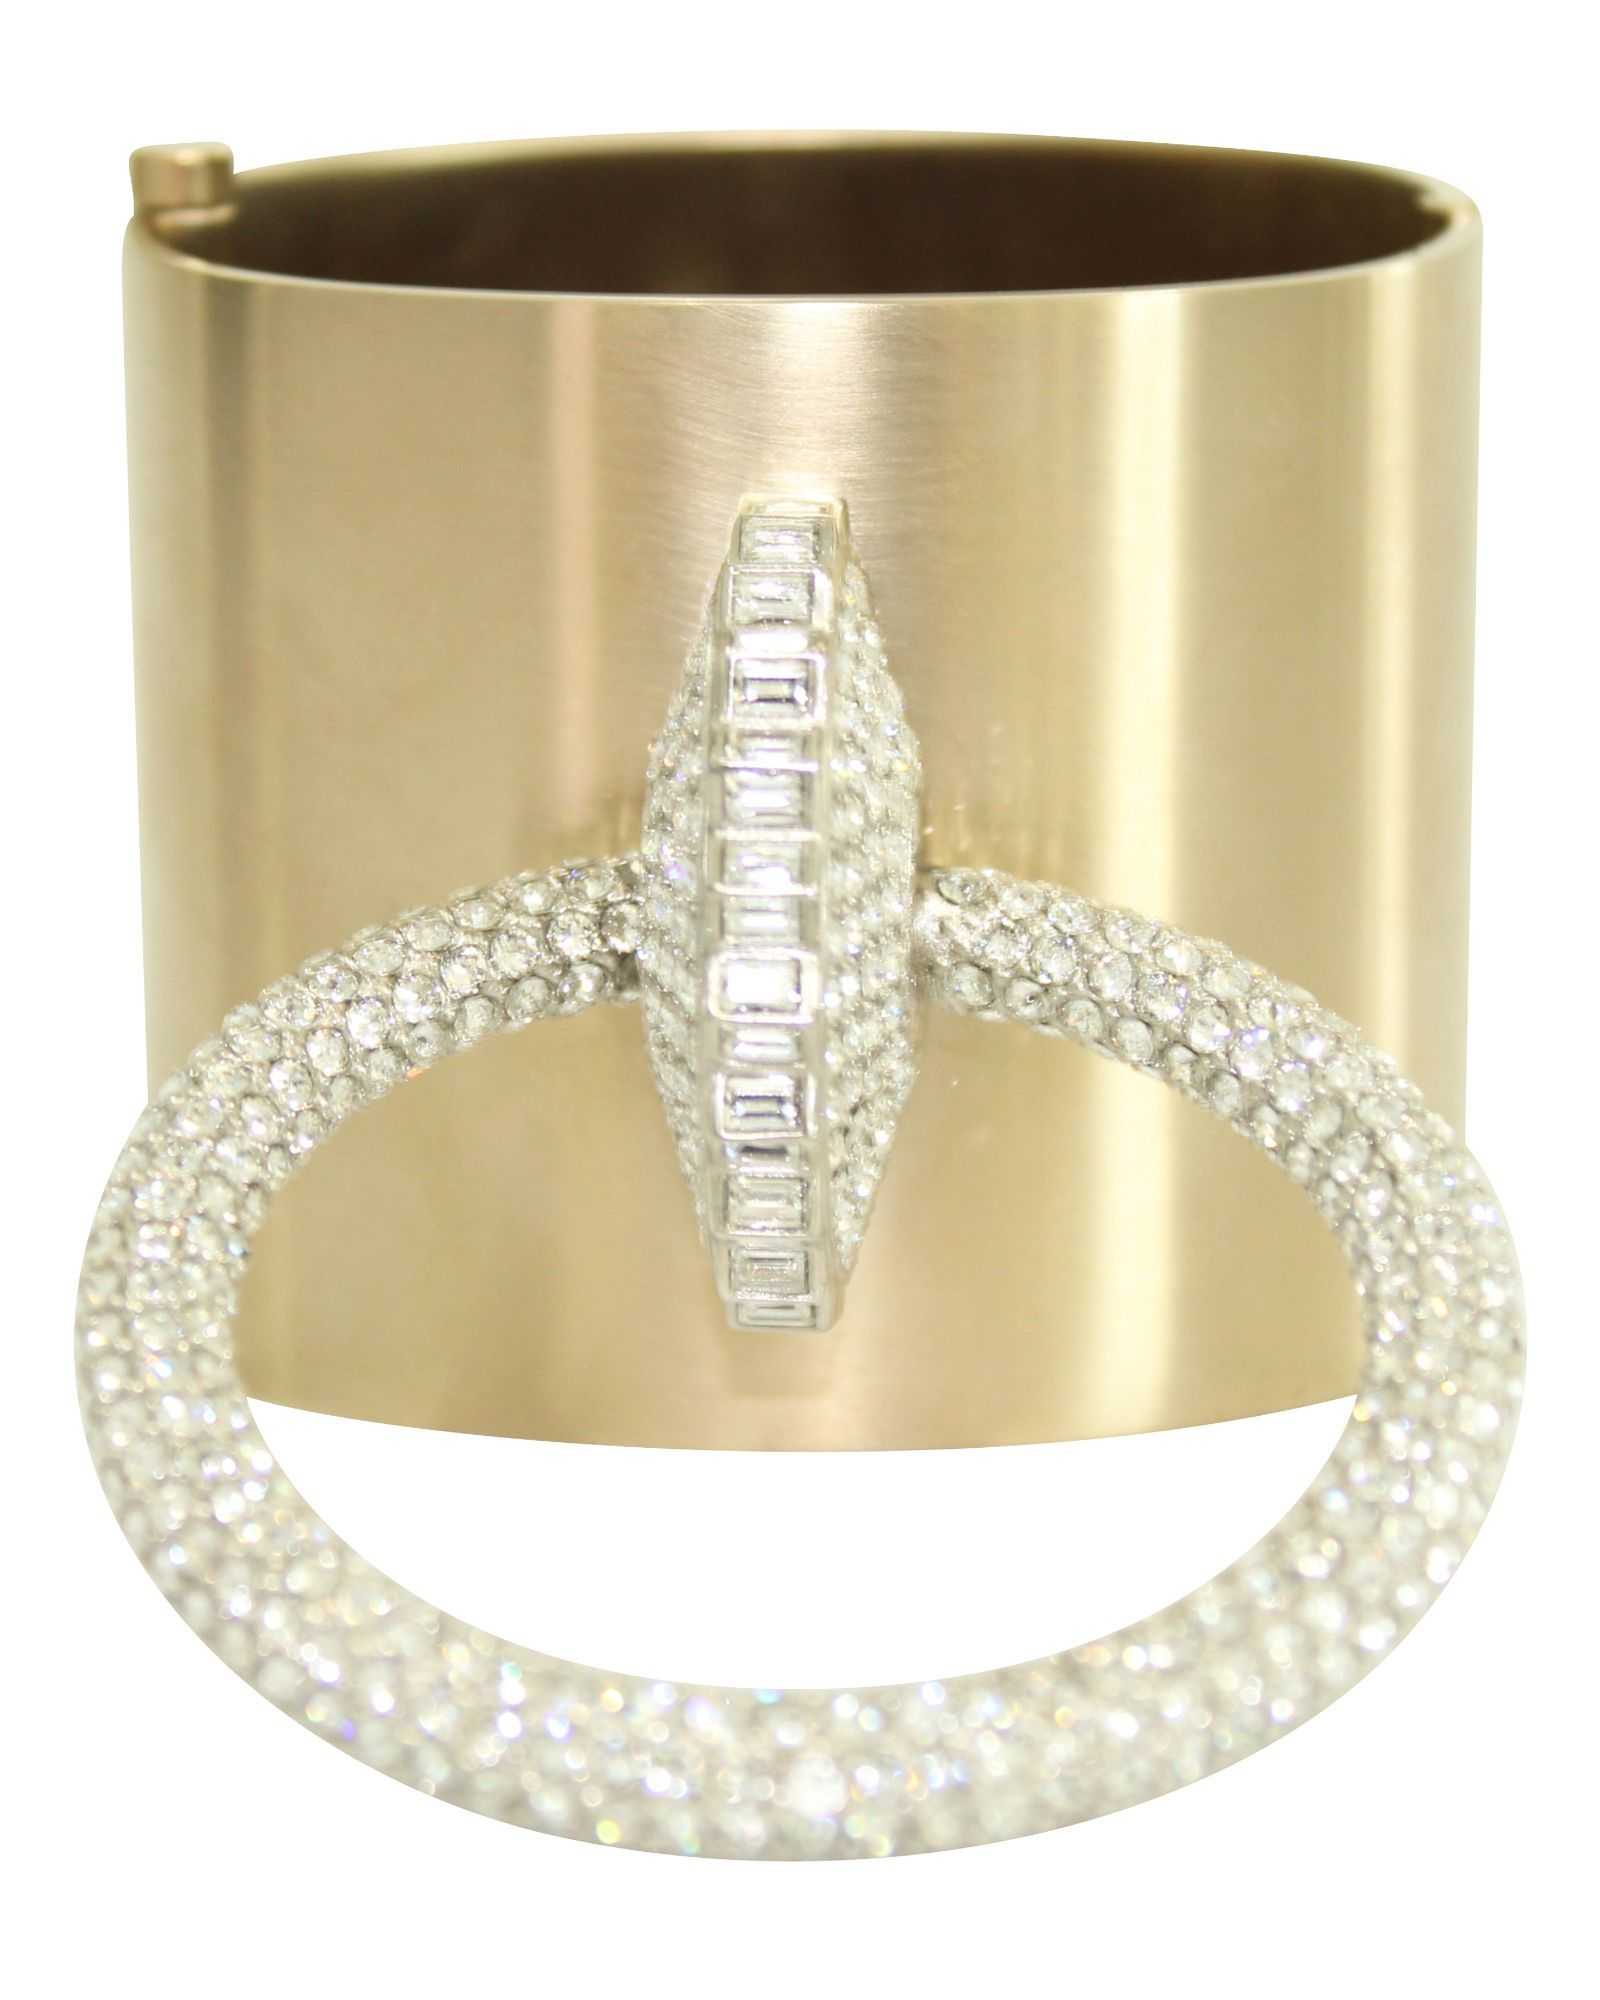 Chanel Crystal Bangle -Pre Owned Condition Excellent